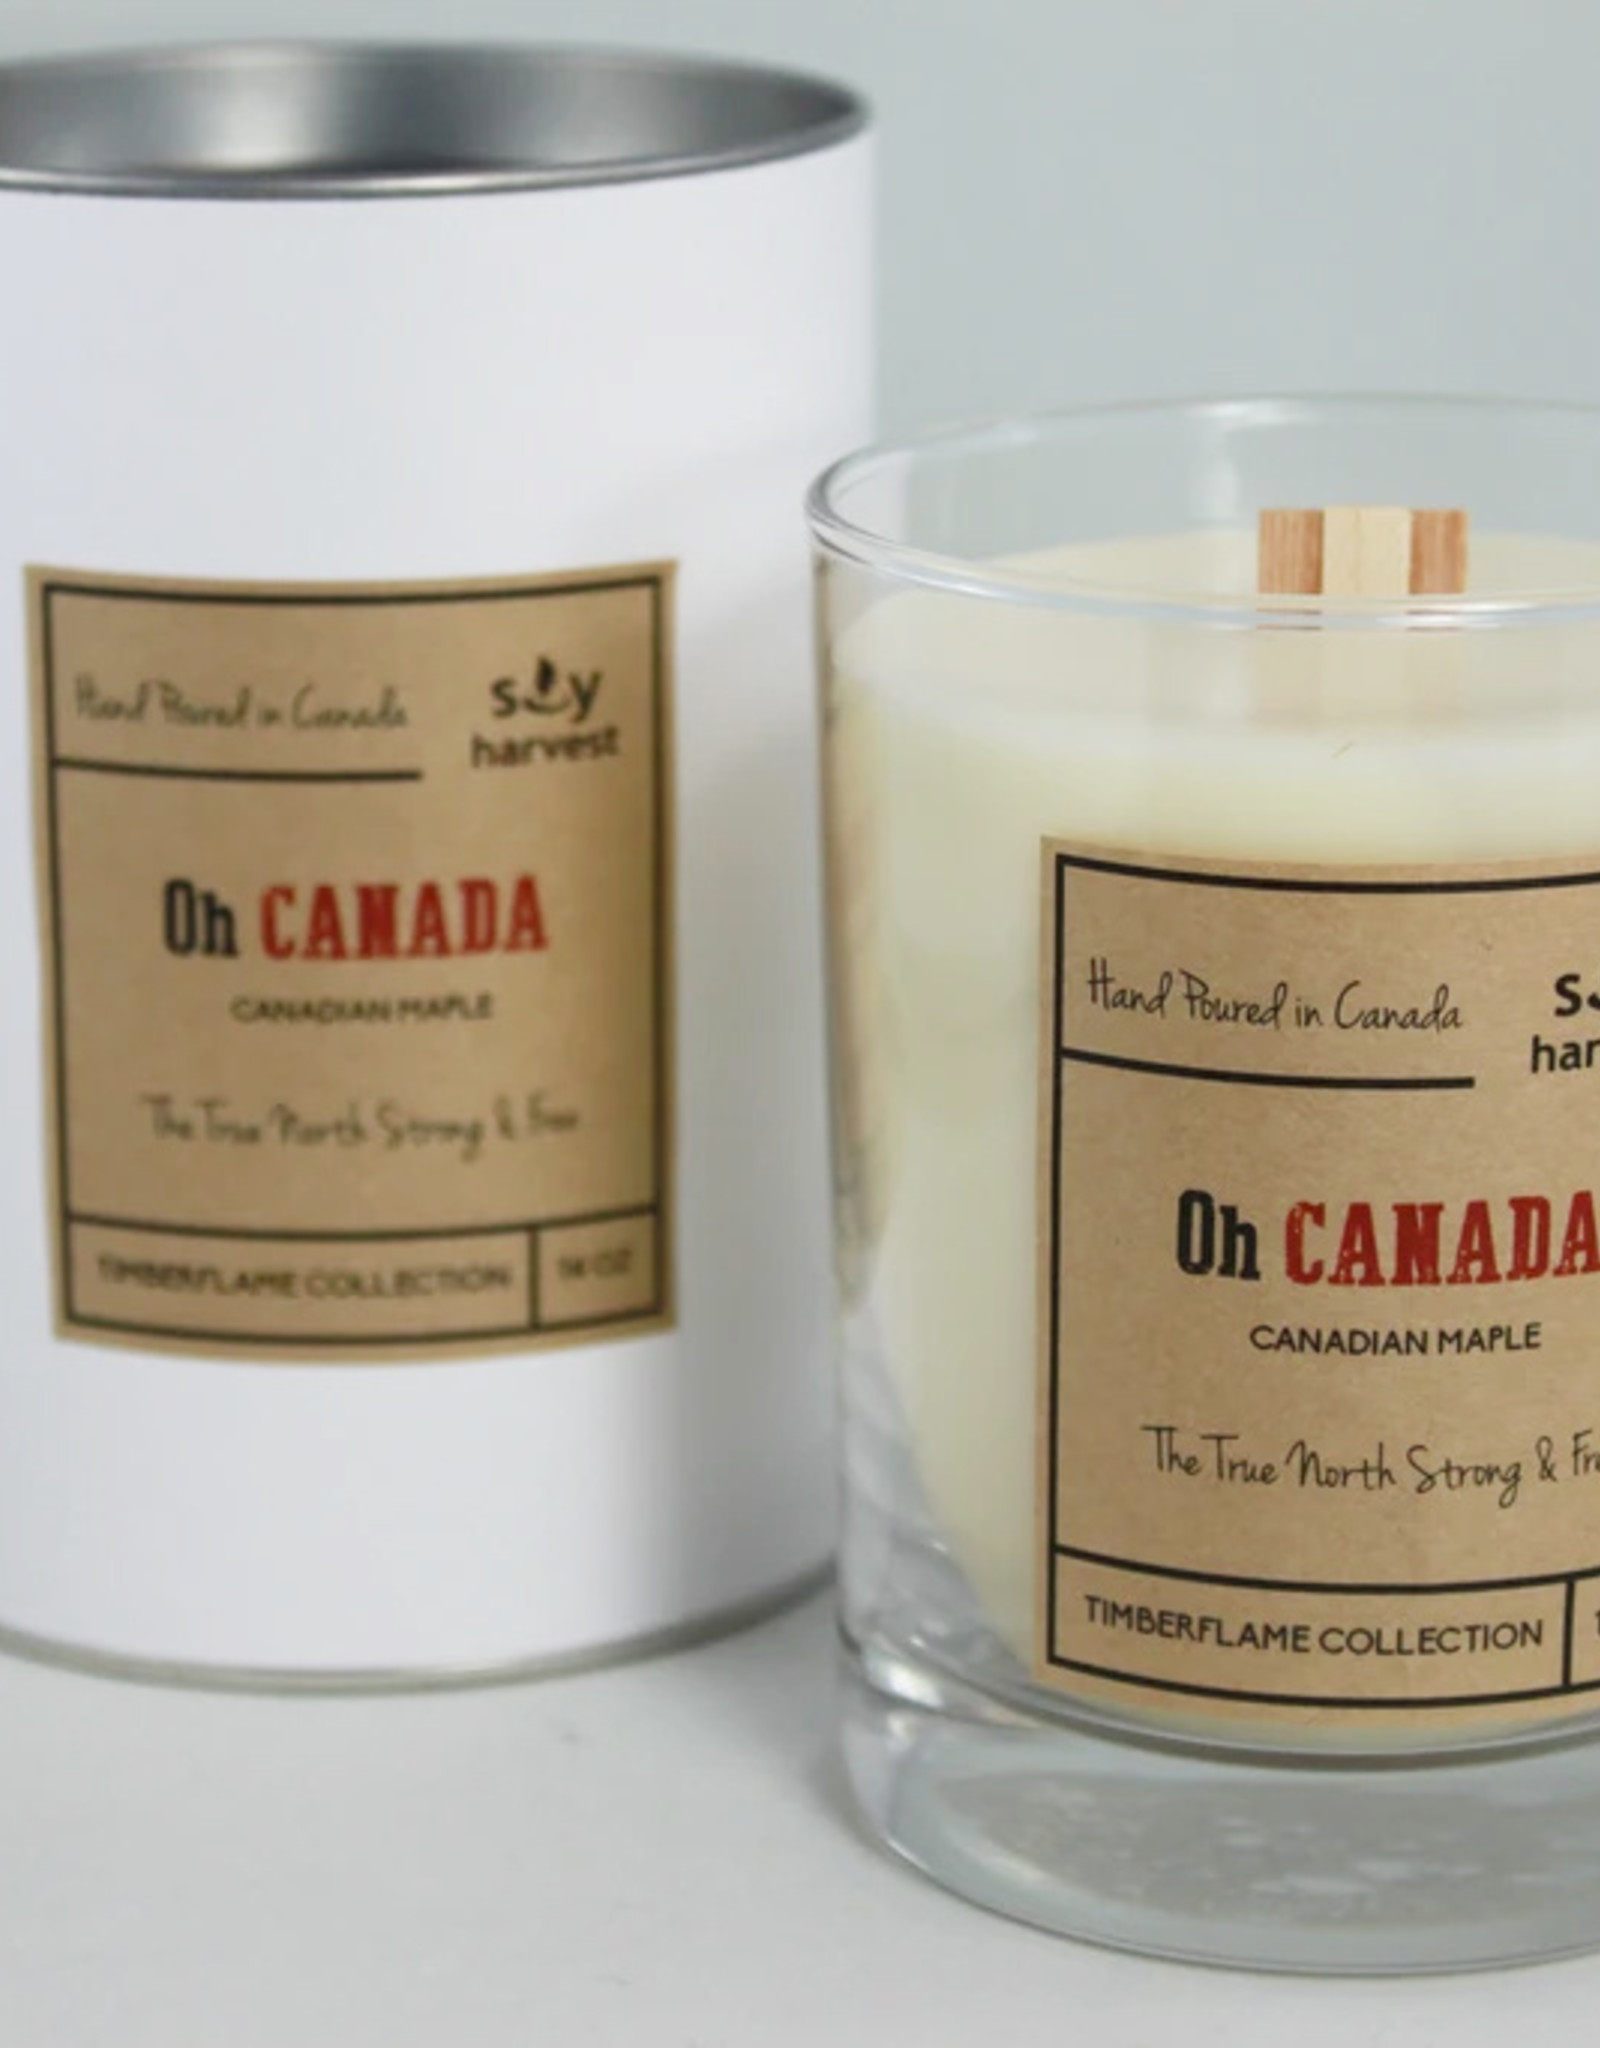 Oh Canada Soy Candle